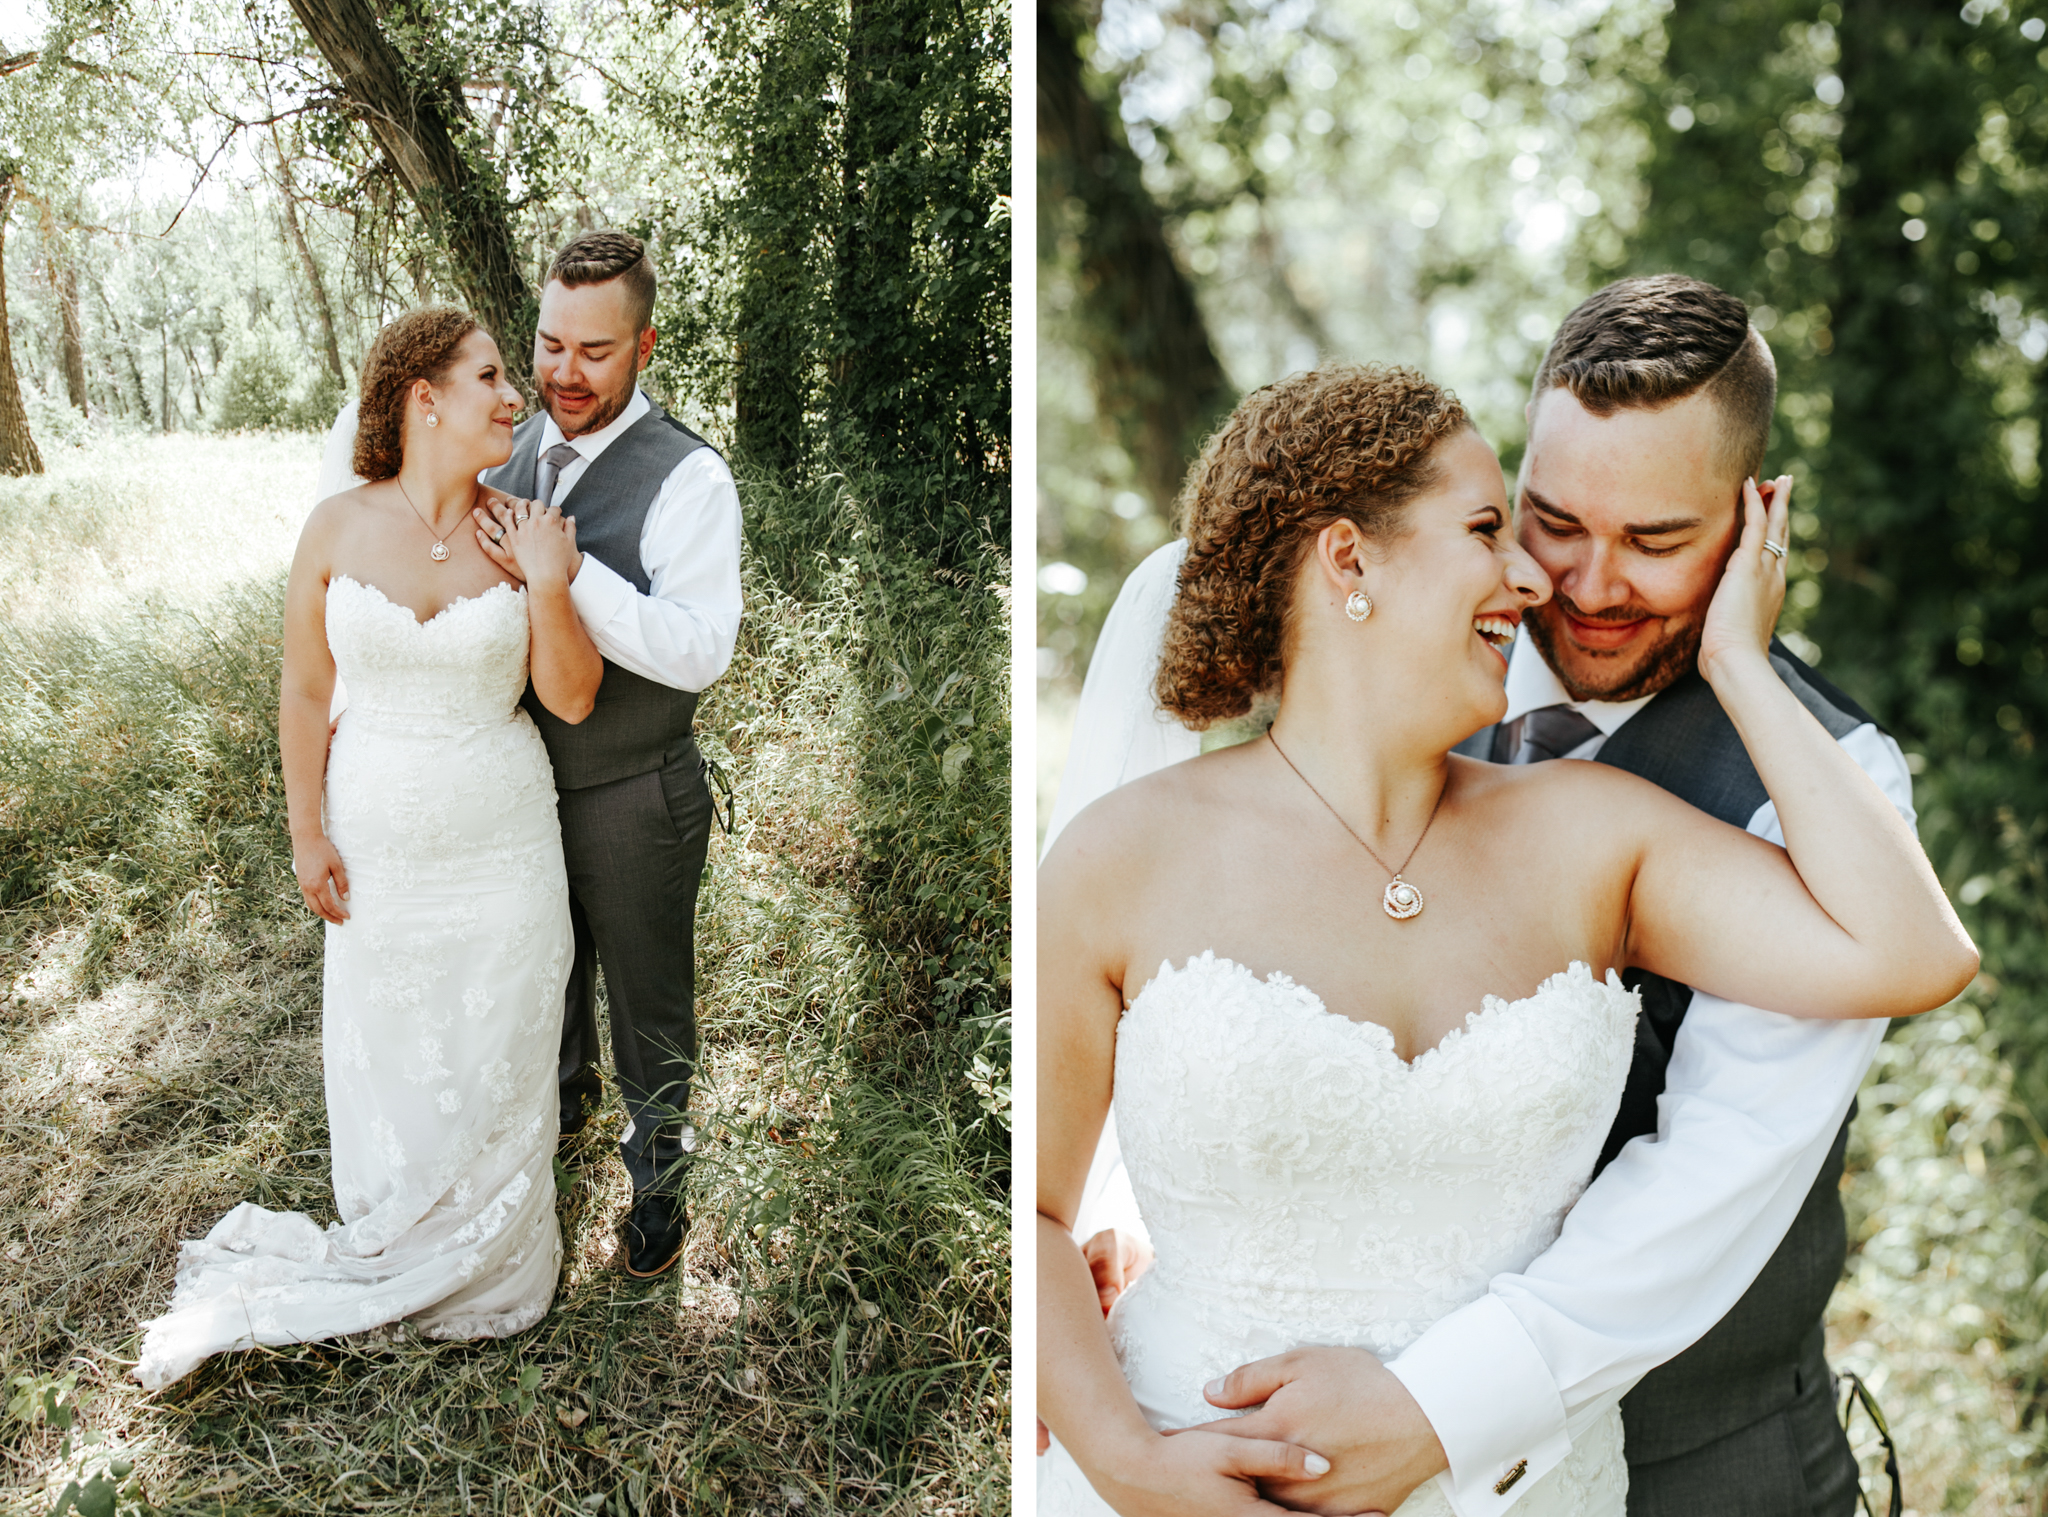 lethbridge-wedding-photographer-love-and-be-loved-photography-trent-danielle-galt-reception-picture-image-photo-138.jpg